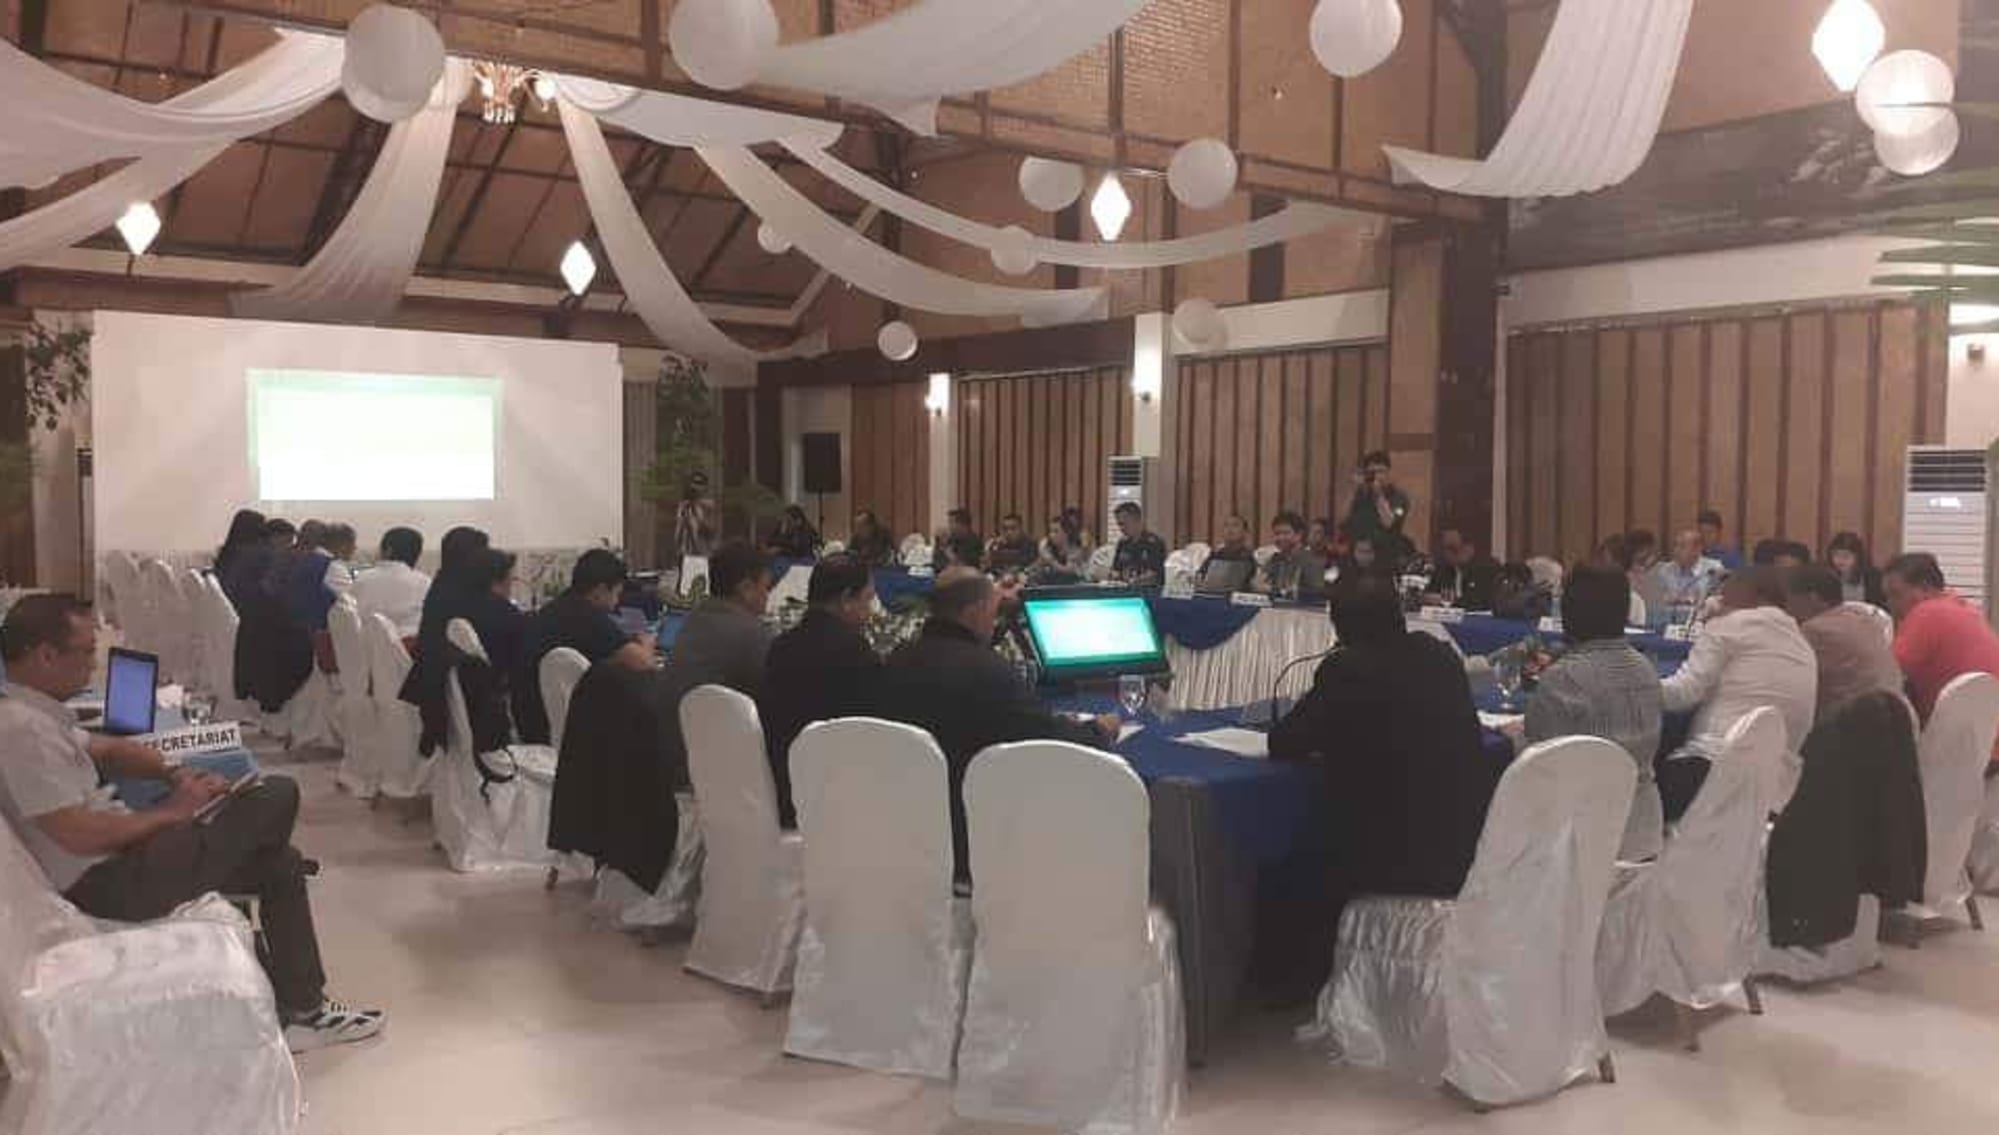 Boracay faces construction moratorium anew